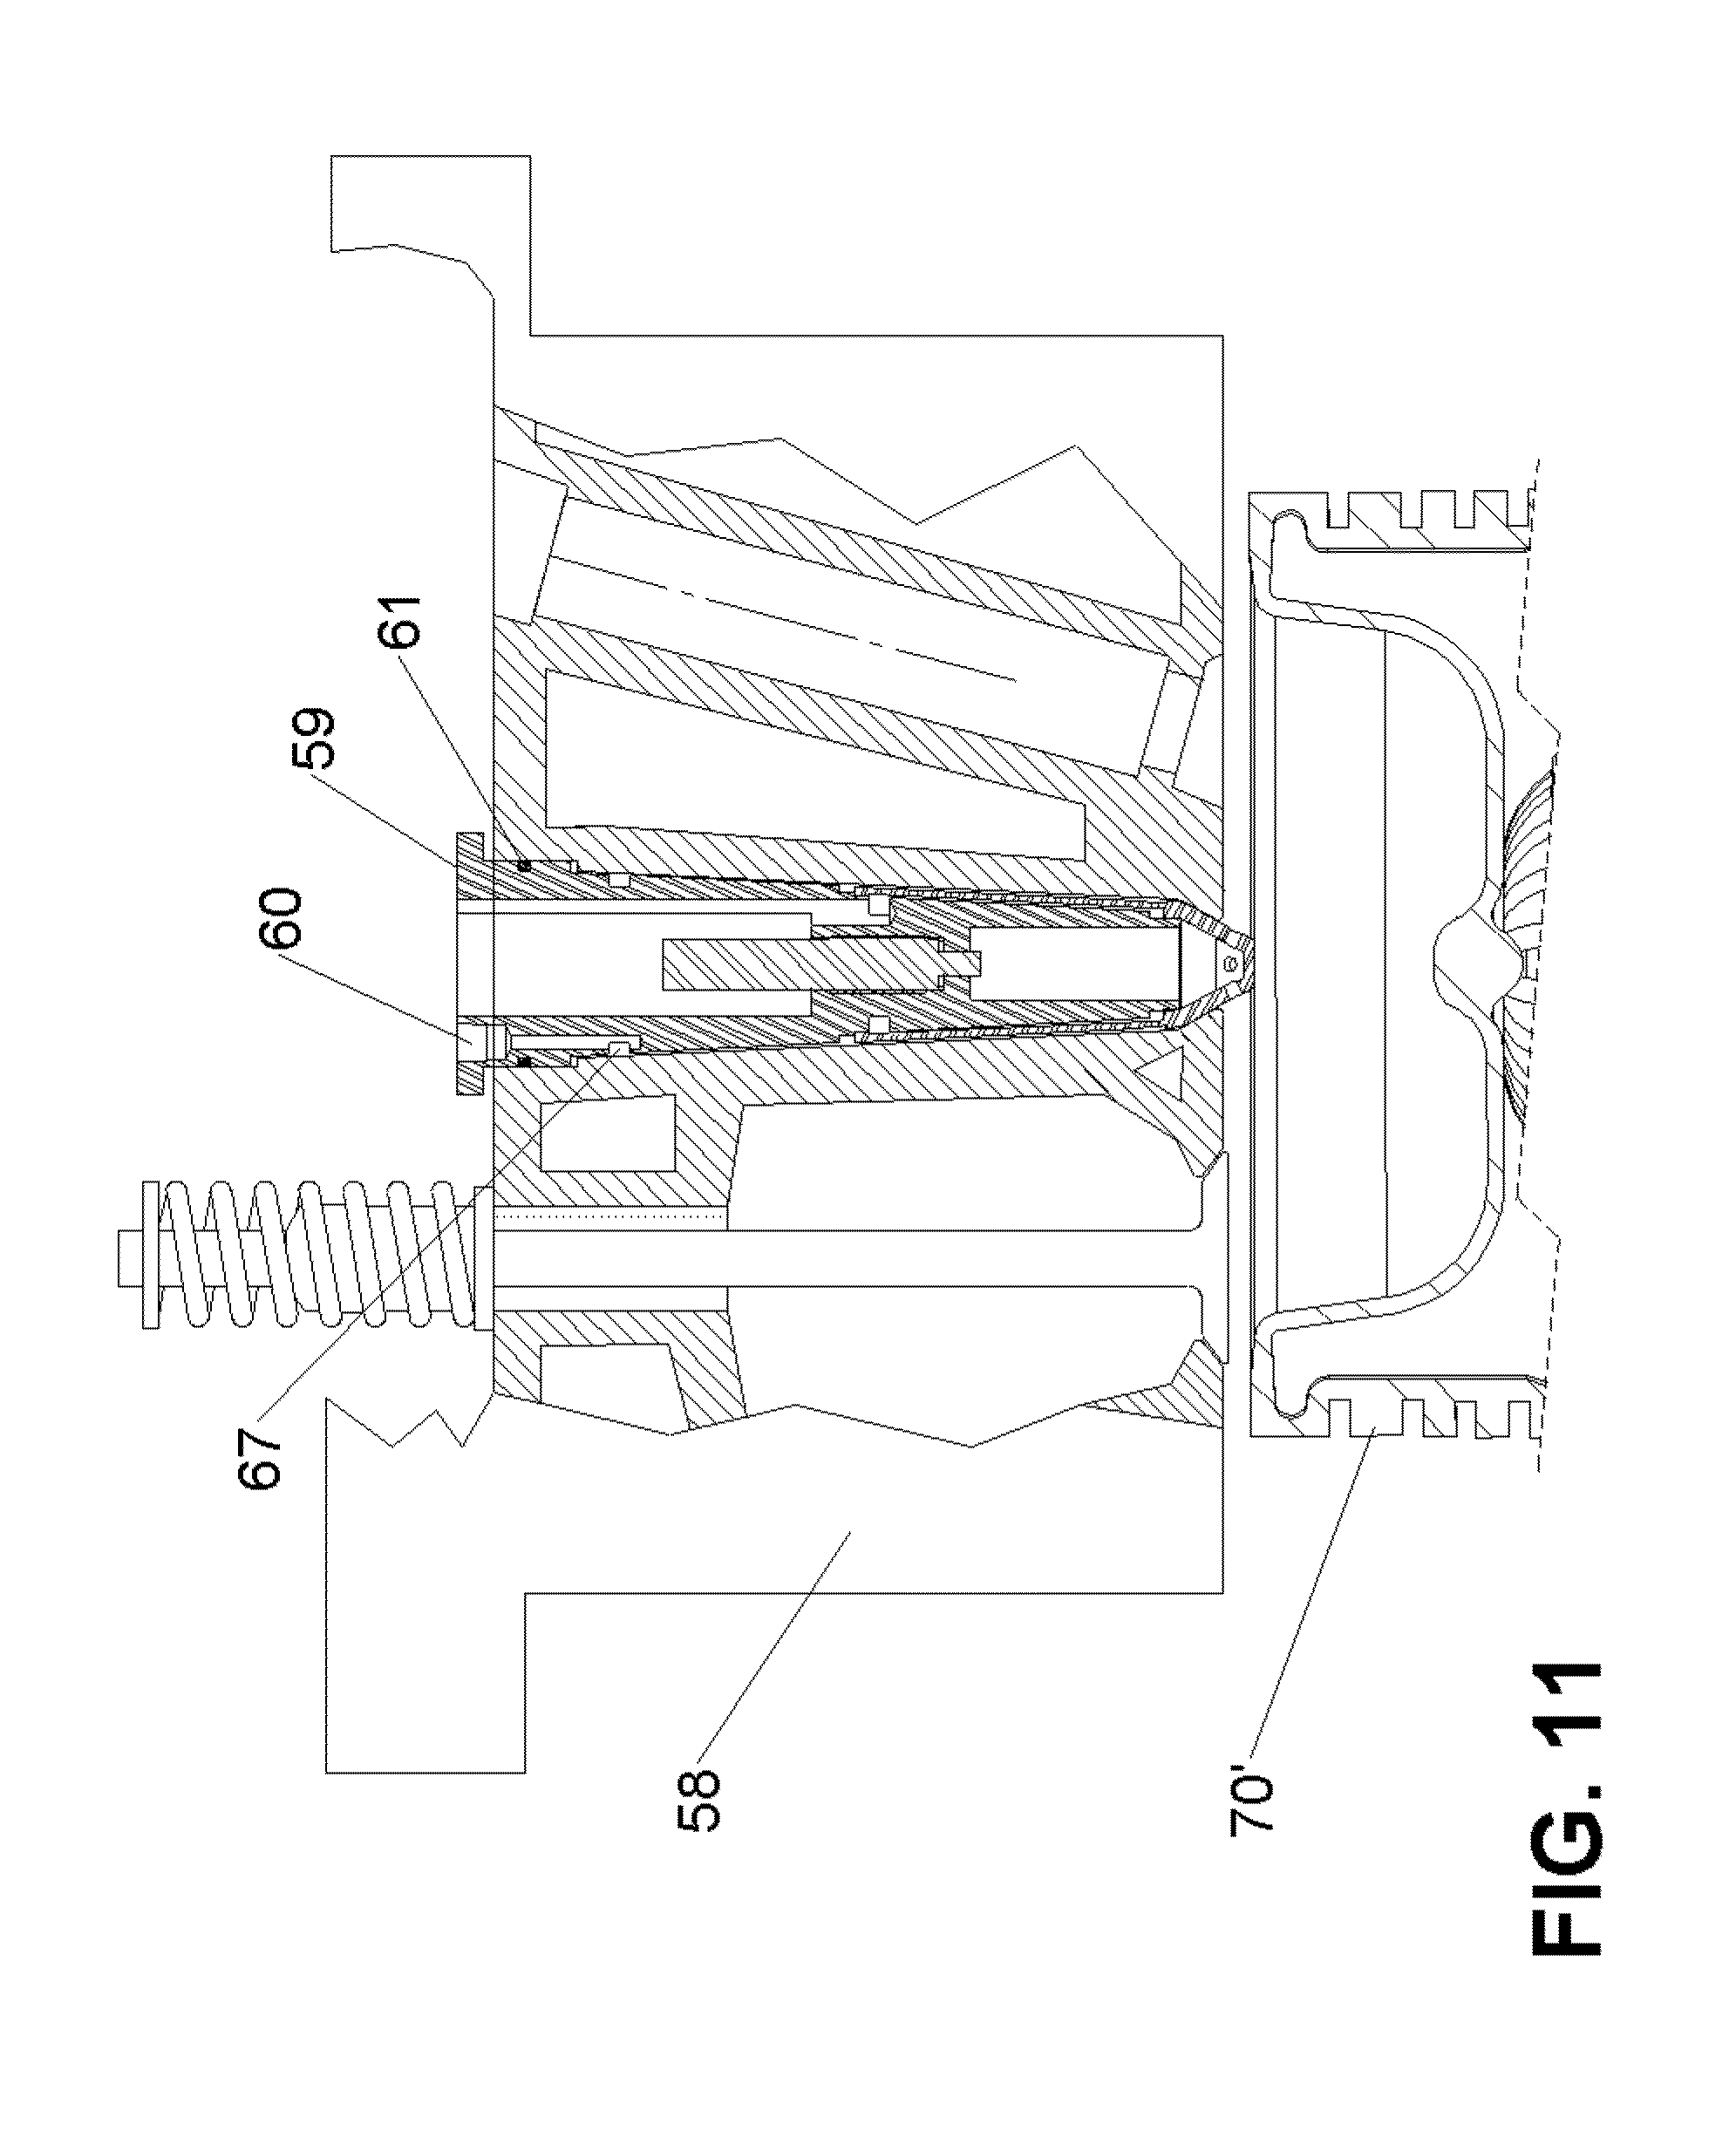 Gas Engines Oxidation Catalyst For Natural Gas Engines